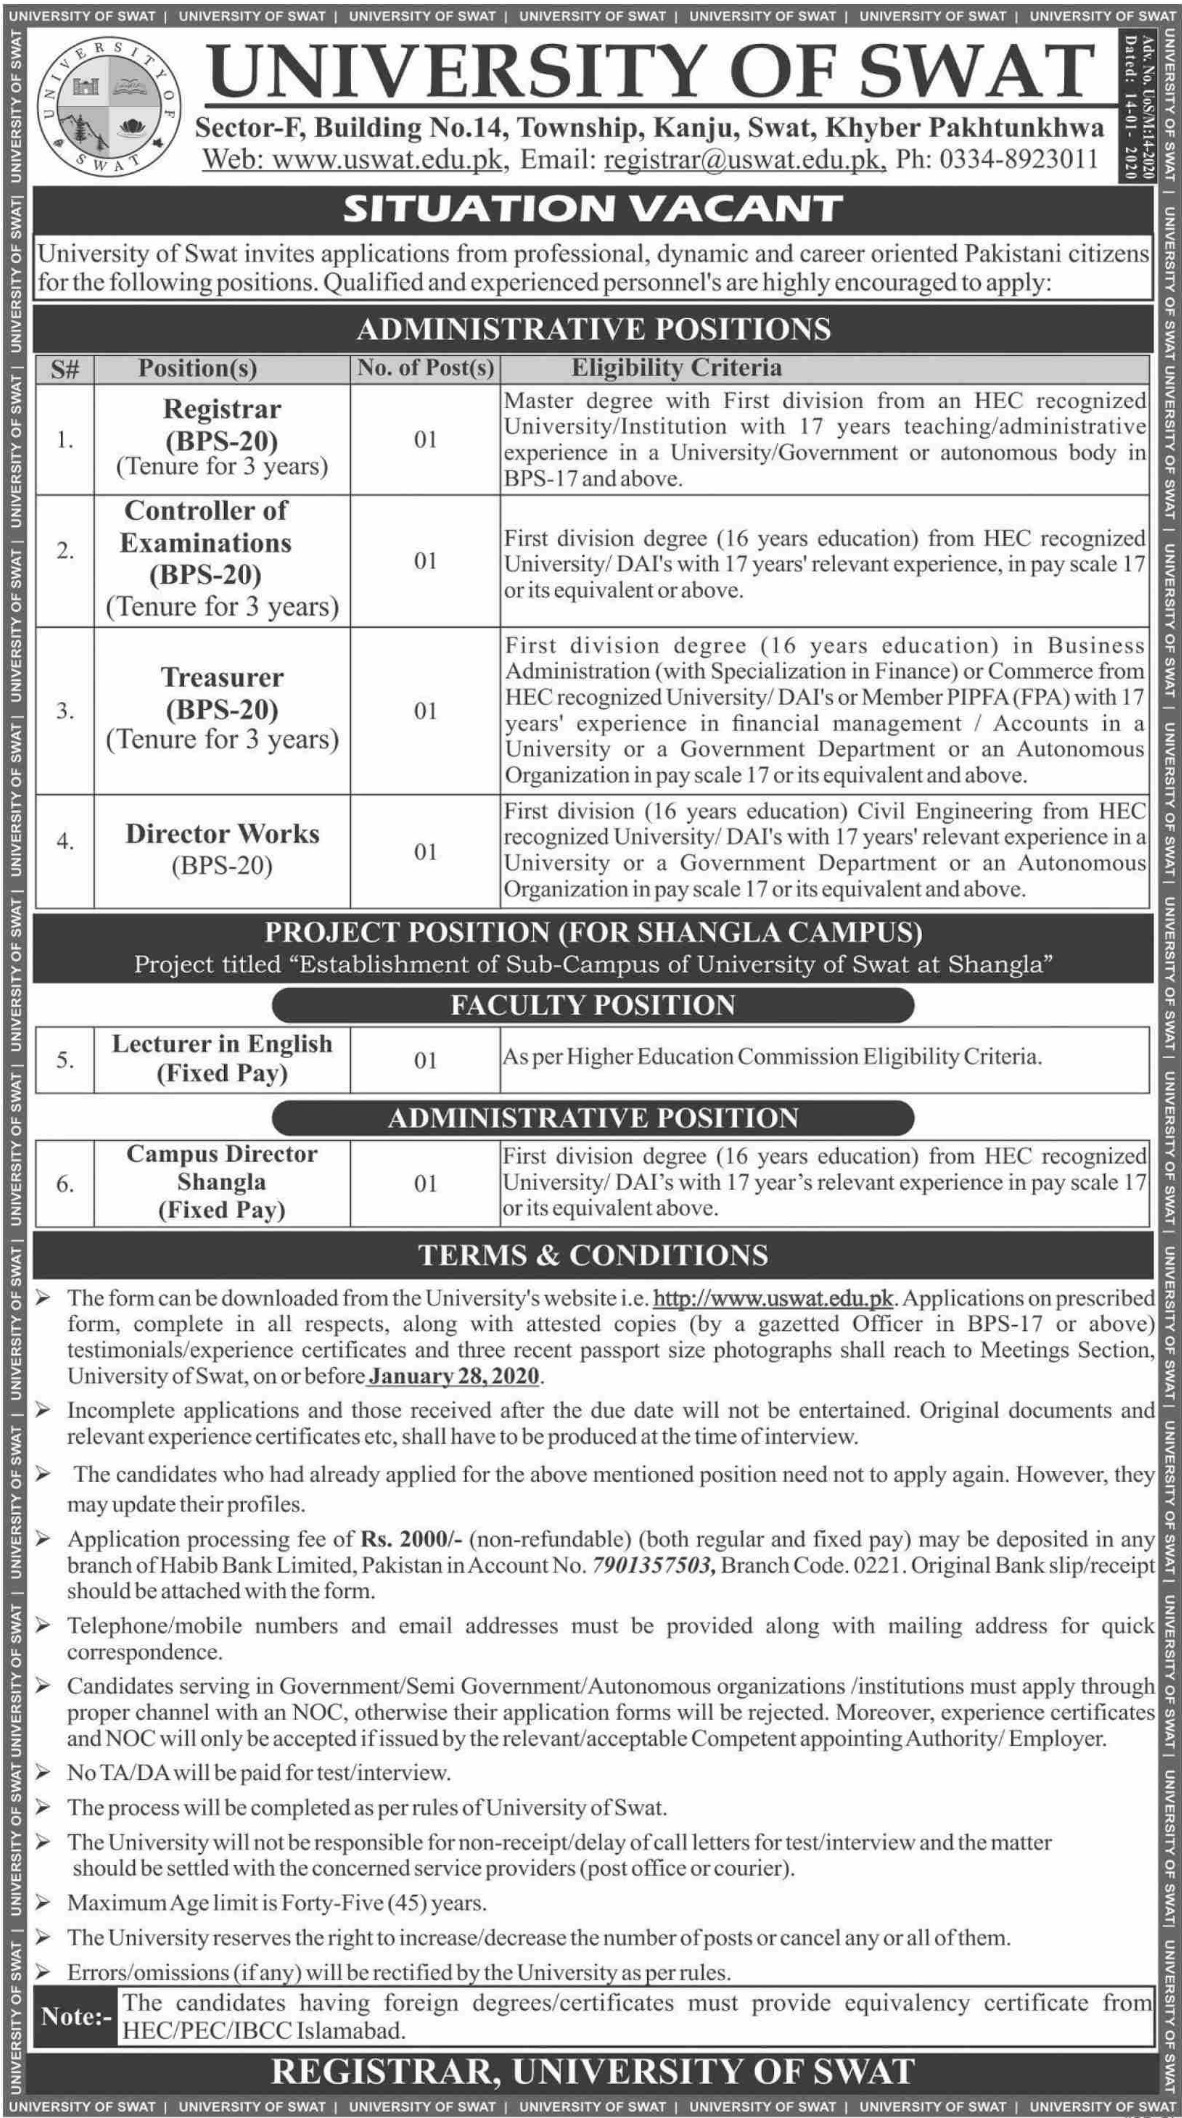 University of Swat Jobs 2020 Khyber Pakhtunkhwa